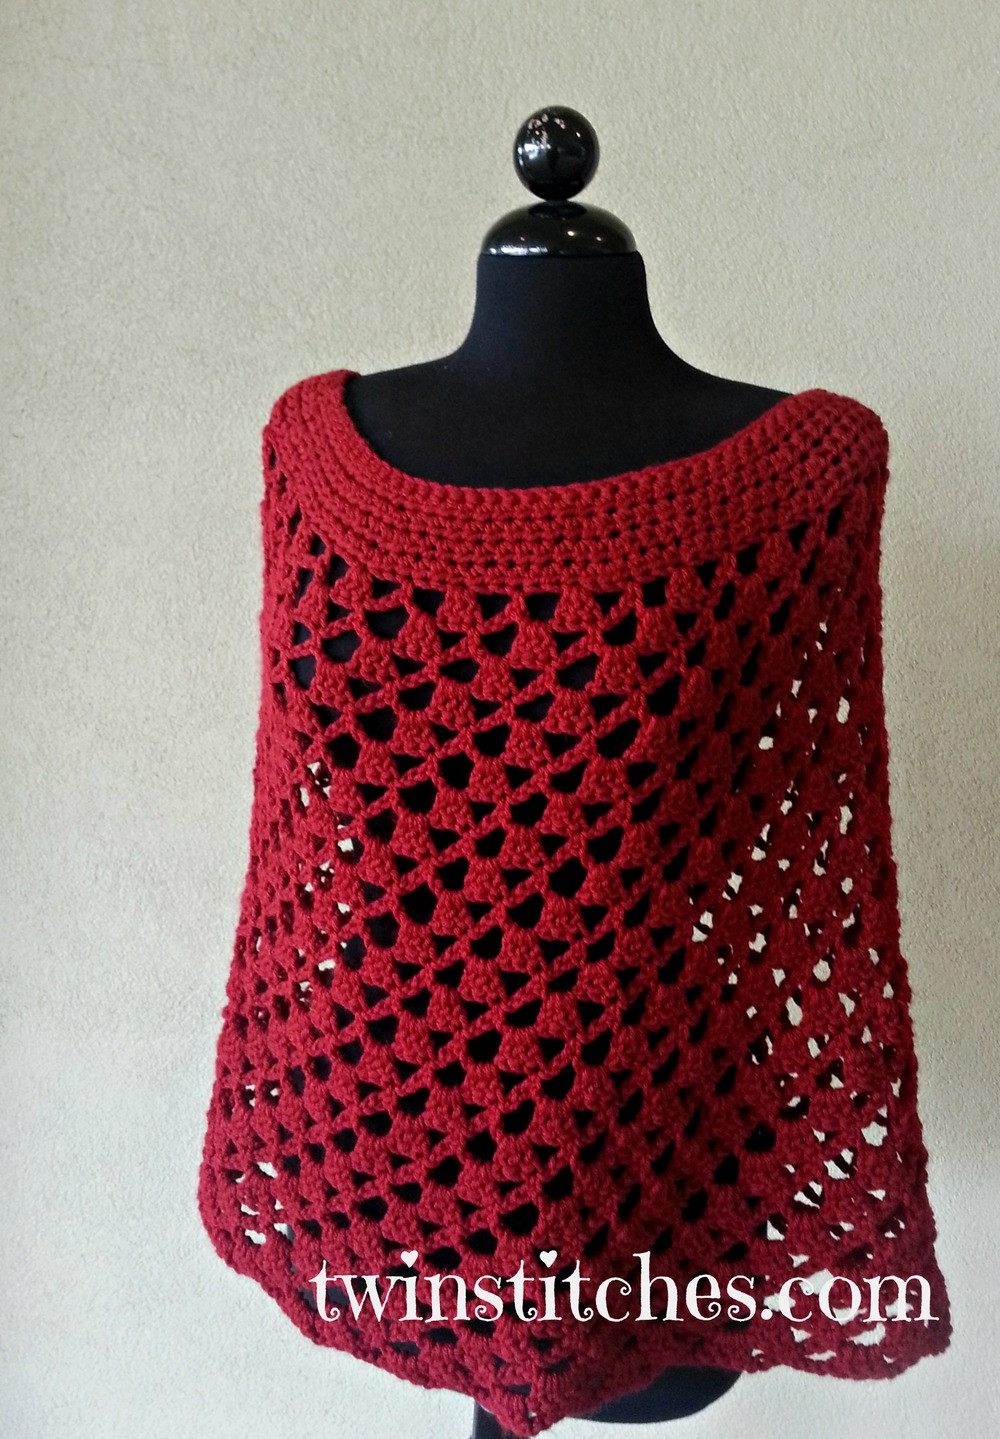 Free Crochet Poncho Patterns Inspirational Scarlett Spiral Crochet Poncho Of Wonderful 50 Images Free Crochet Poncho Patterns